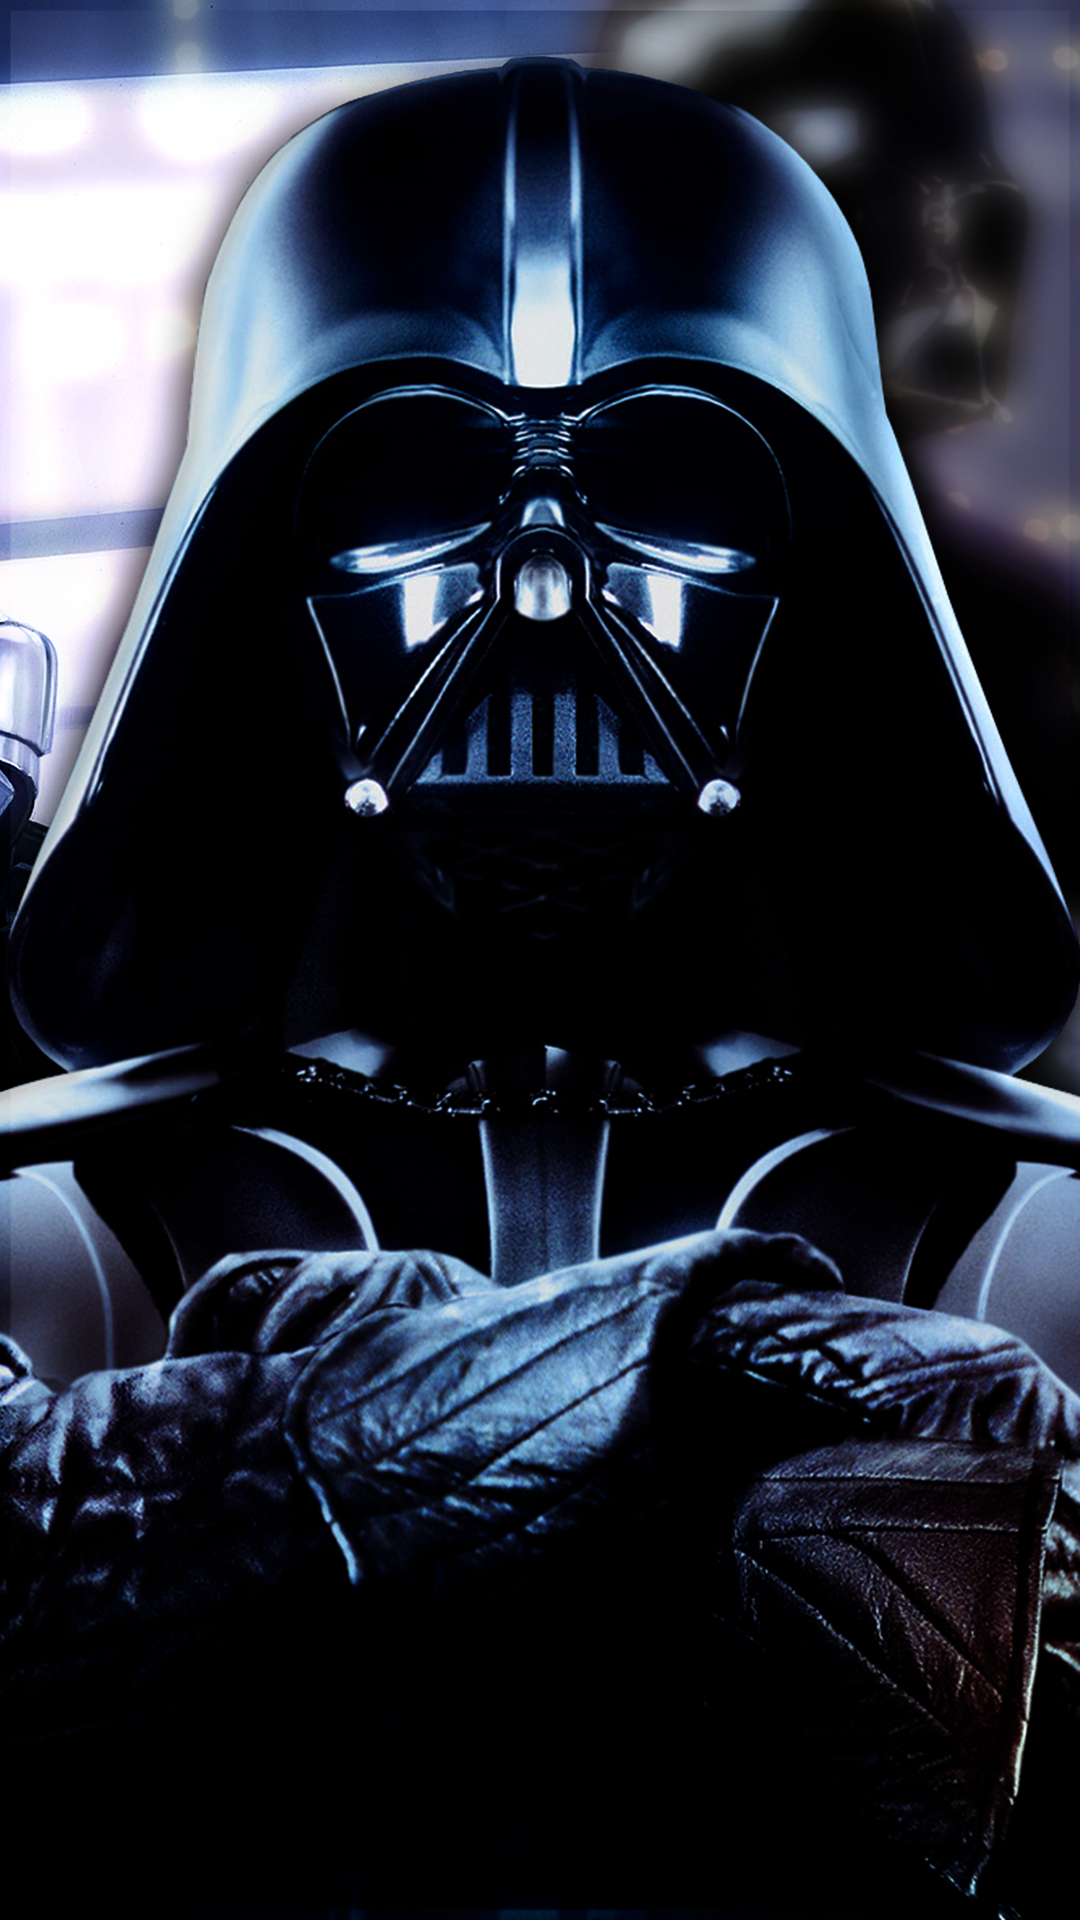 Ultra Hd Darth Vader Wallpaper For Your Mobile Phone 0363